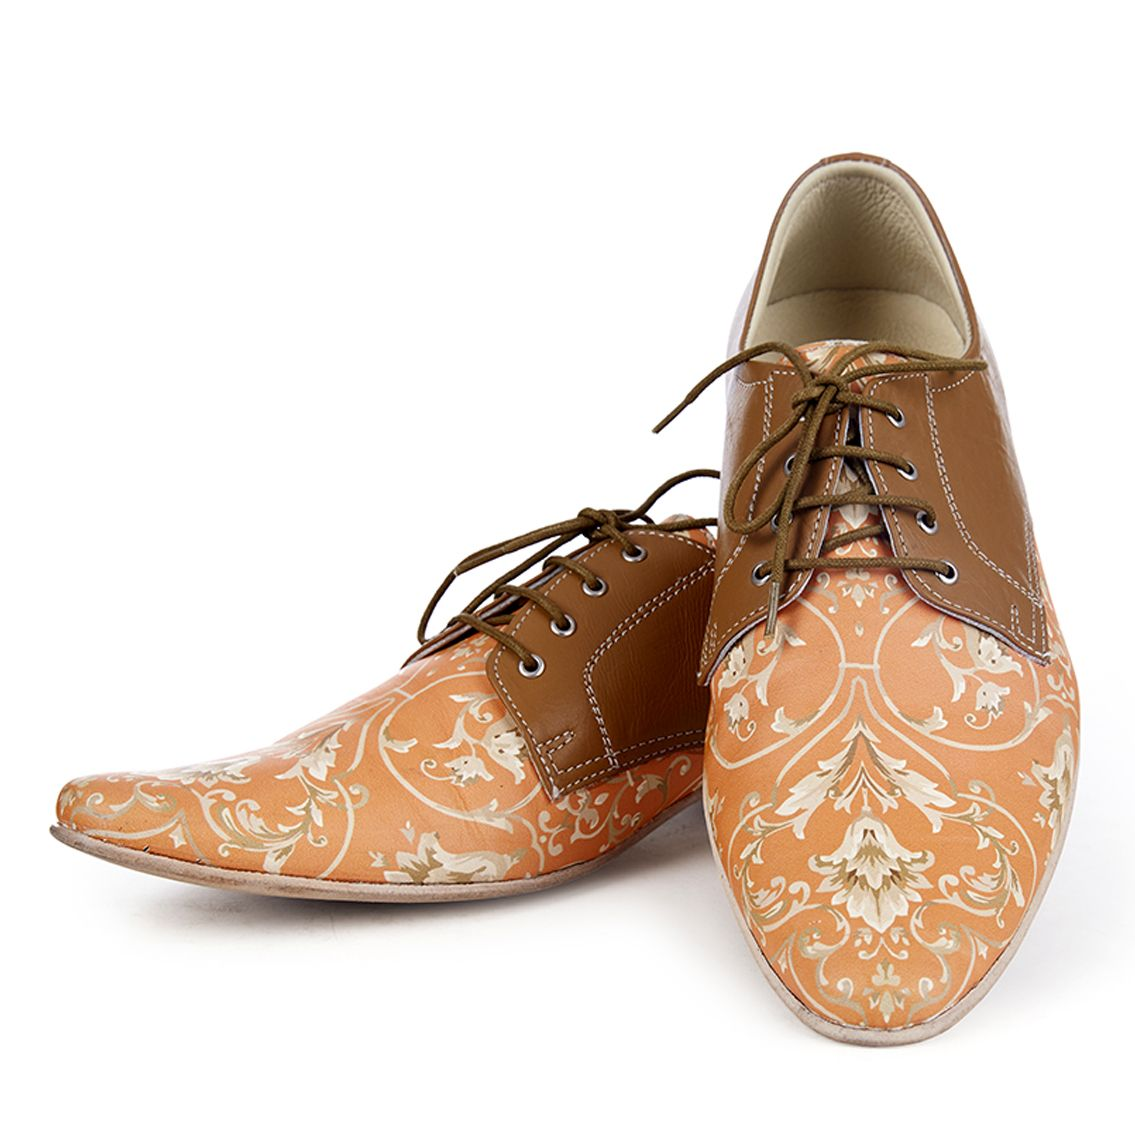 Dharti Handmade Leather Shoes